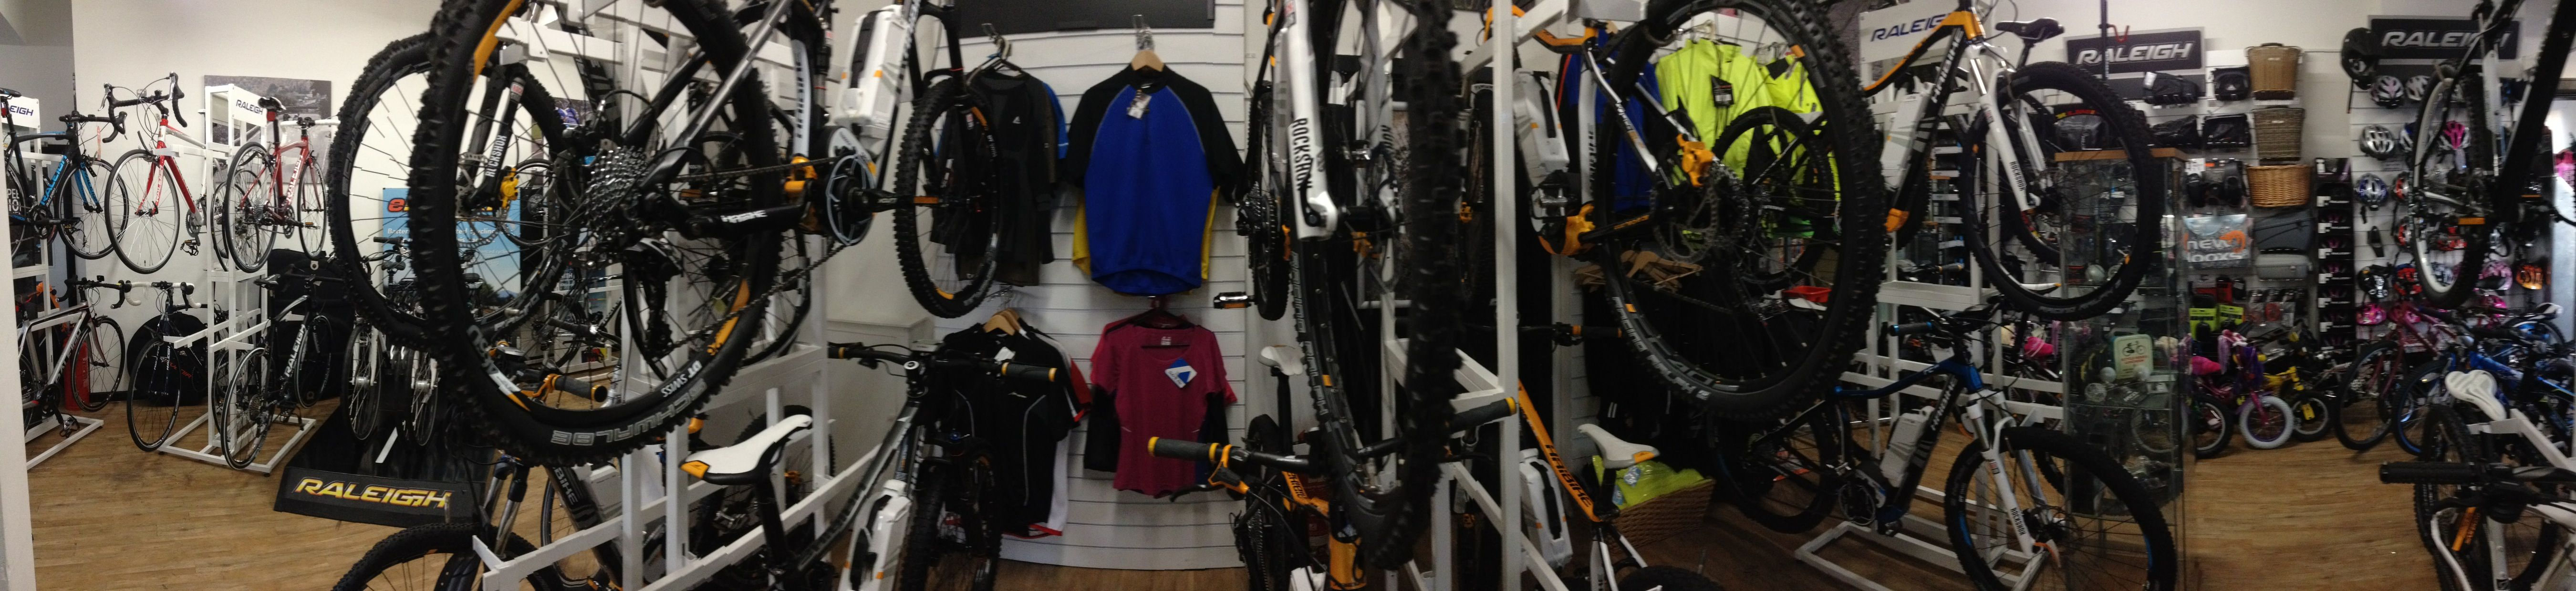 panorama bike shop | Our Bike Shop | Bike, Bicycle shop, Bicycle